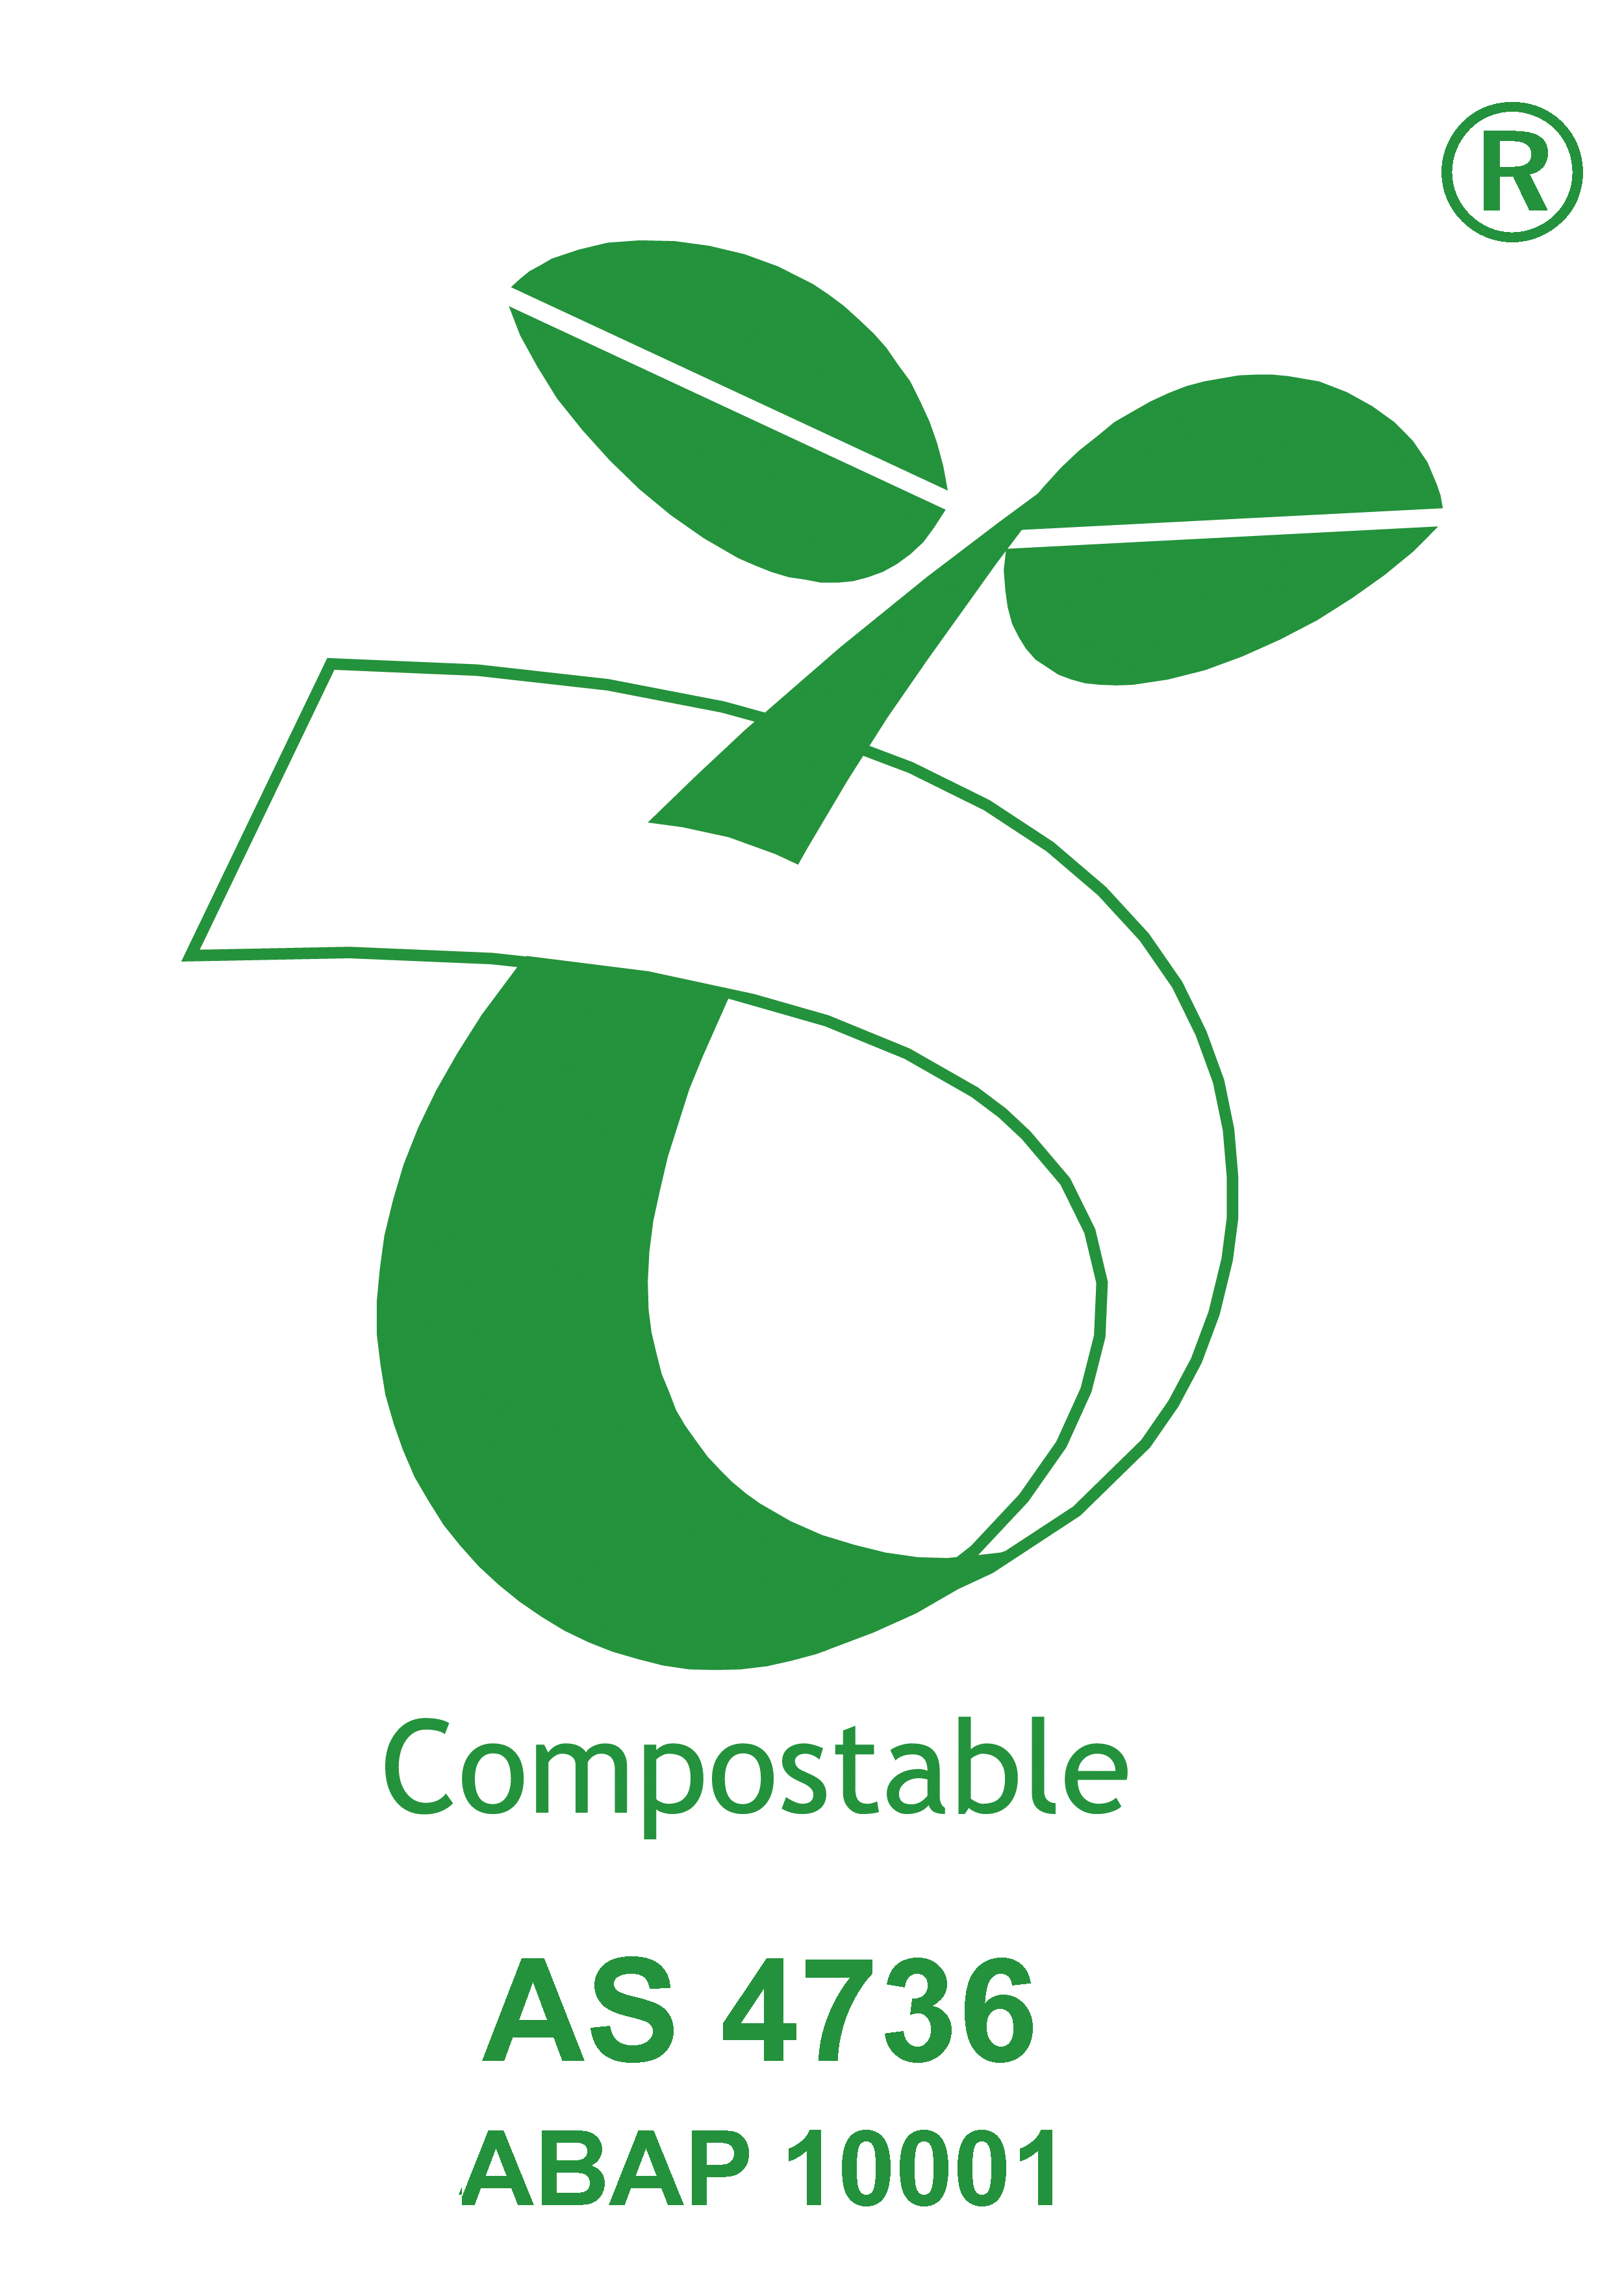 busted common myths and misconceptions around compostable